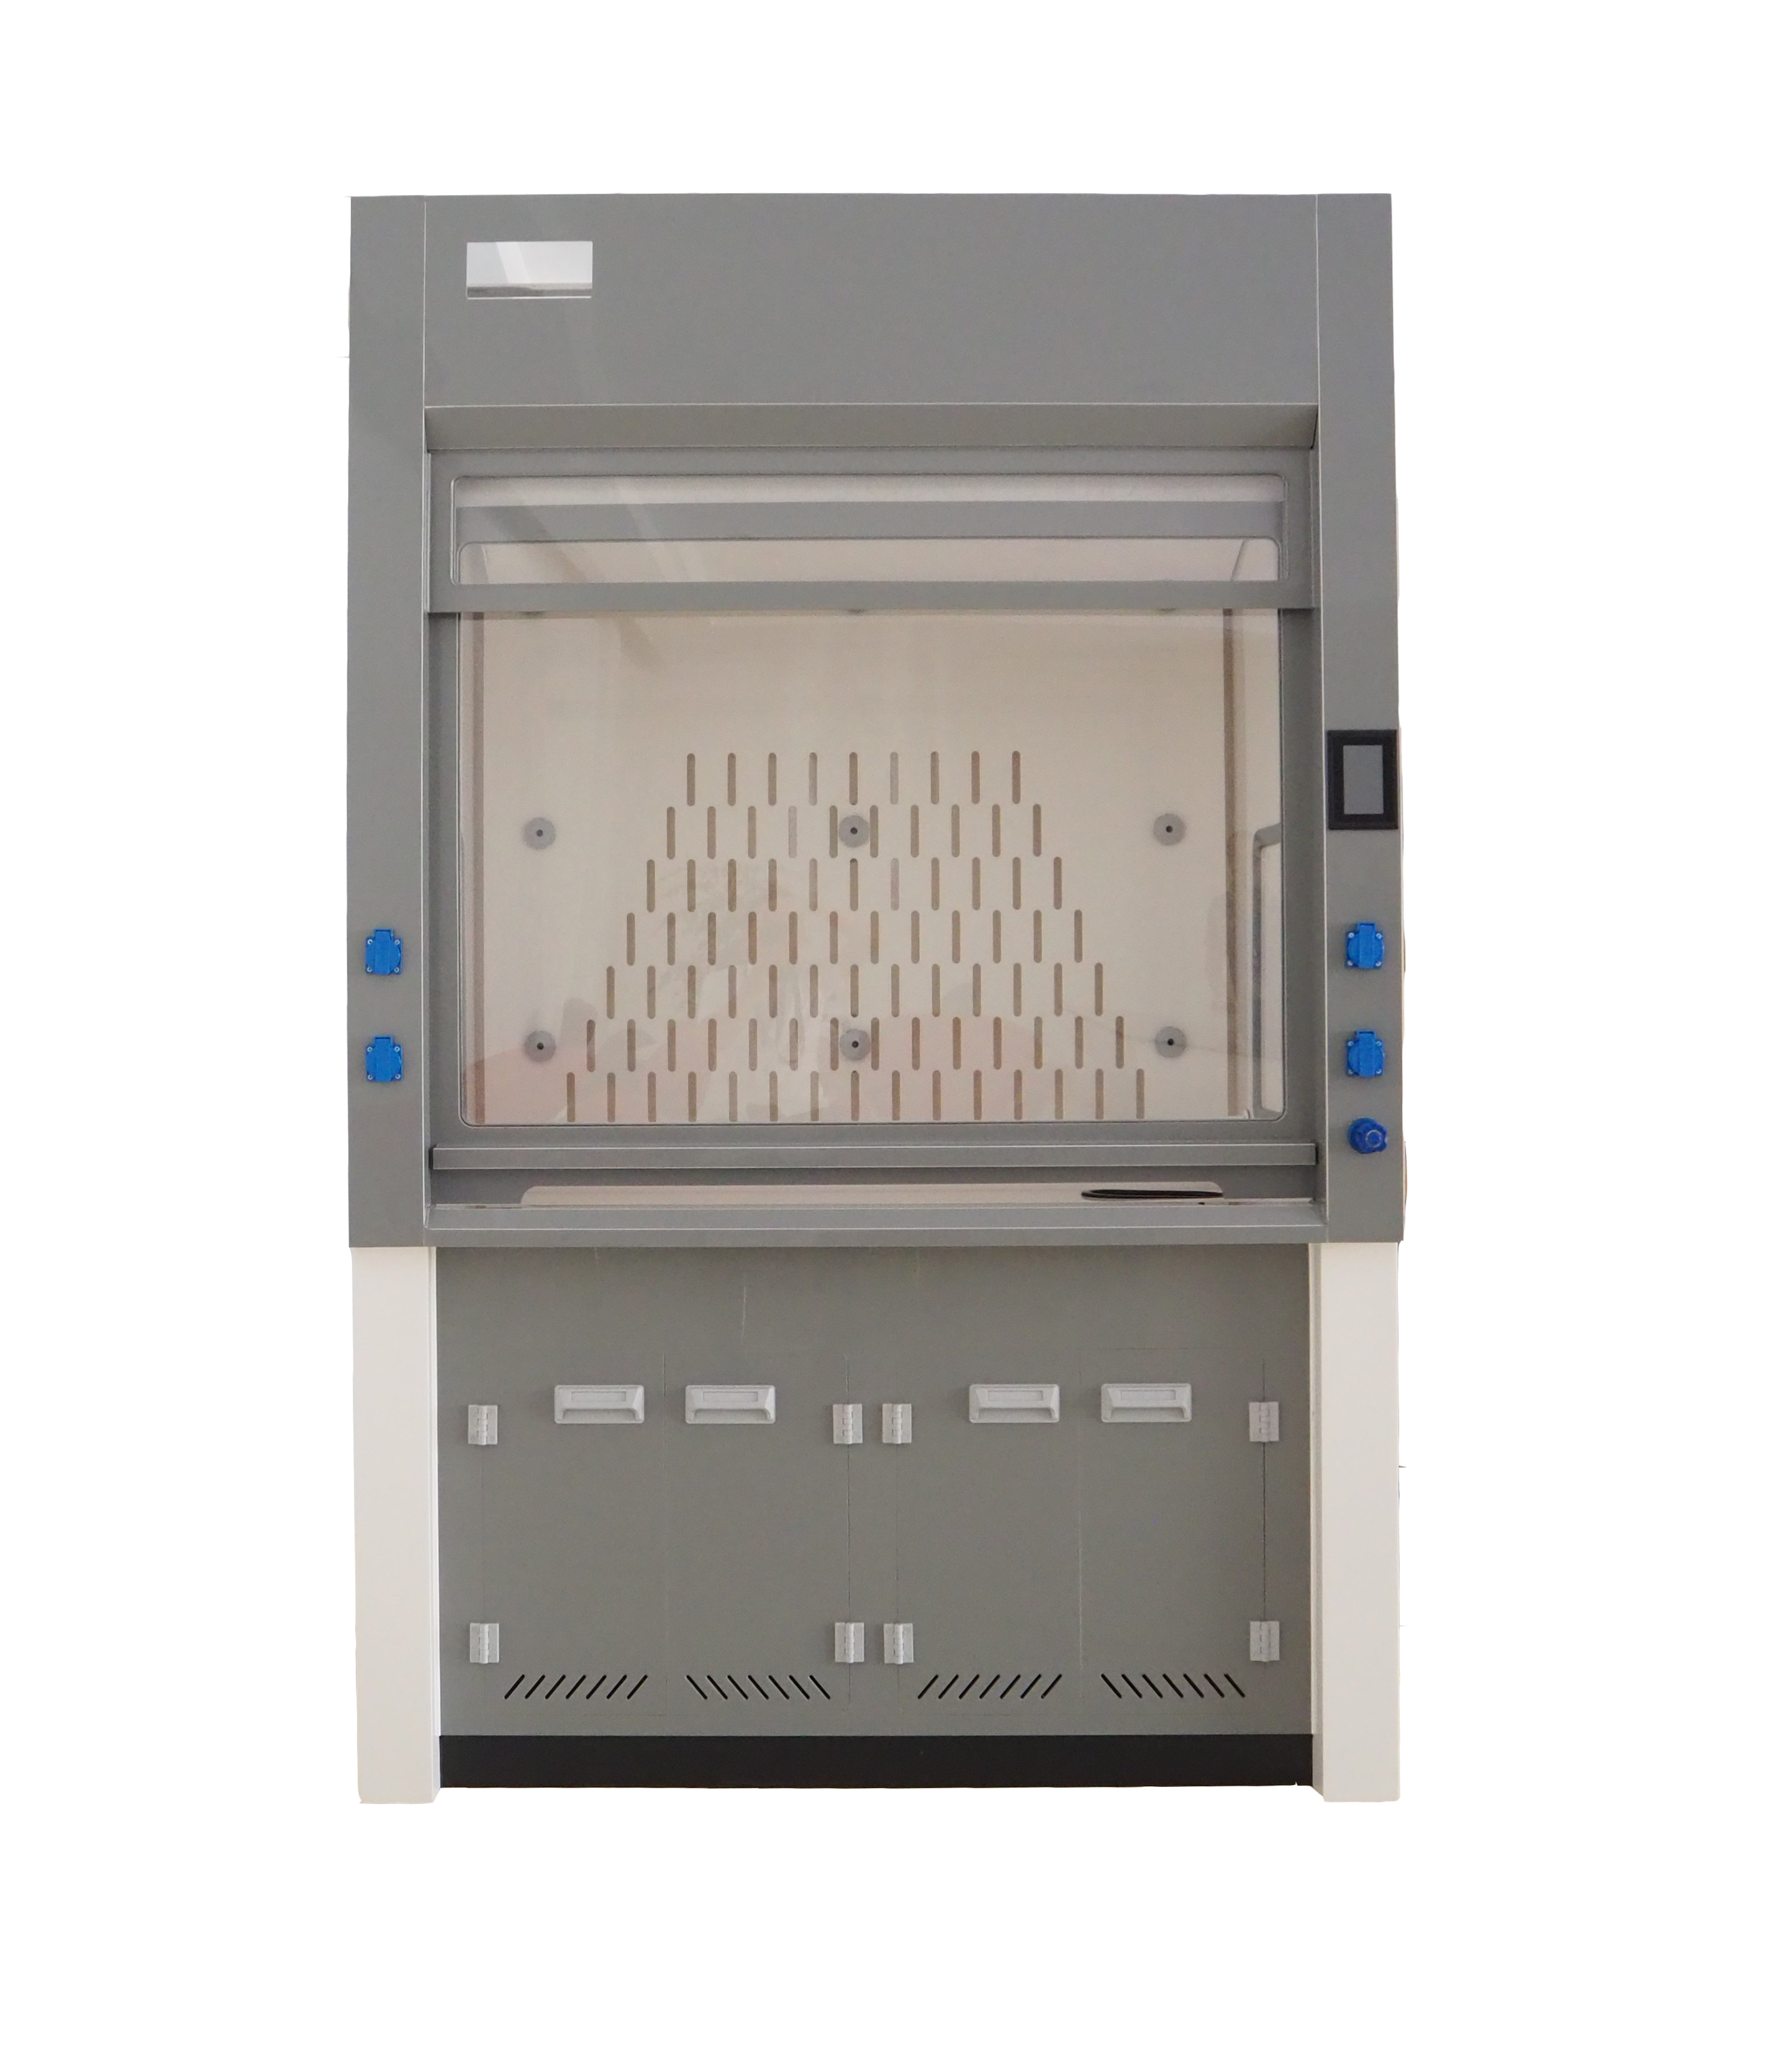 PP Fume hood Featured Image